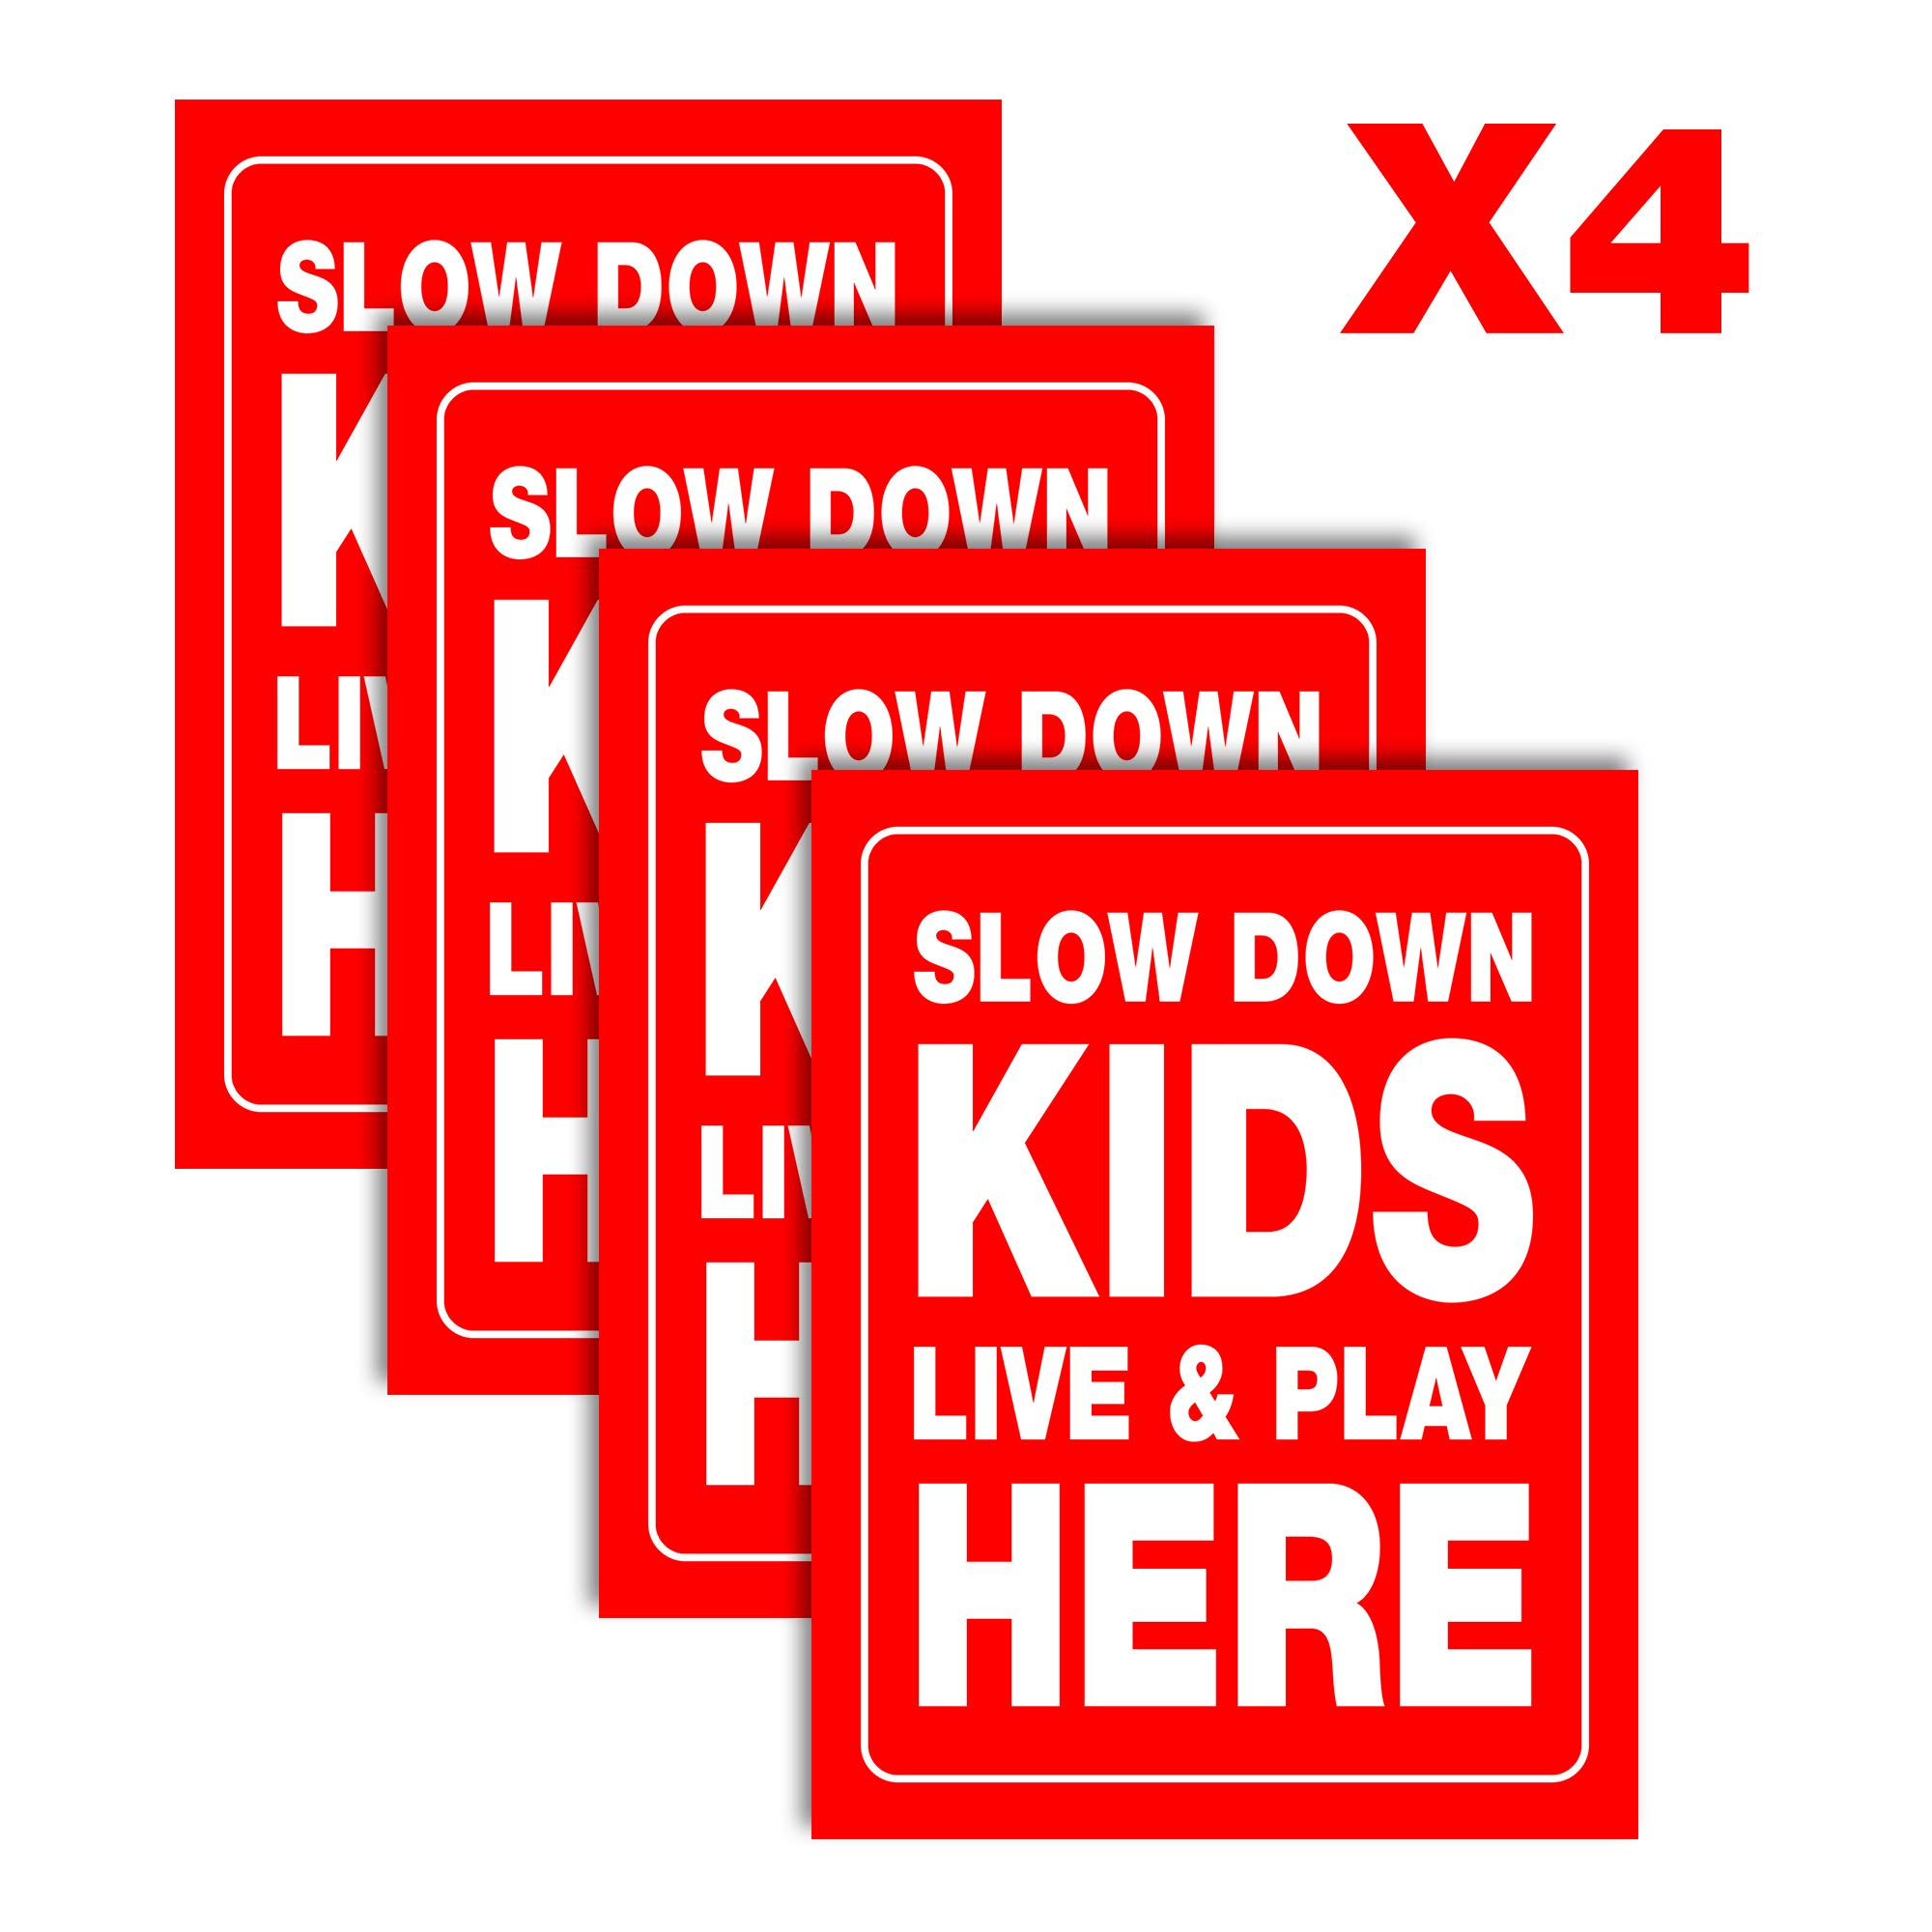 Accelerated Intelligence Inc. Slow Down Kids Live & Play Here Yard Sign | Double-Sided Red on White Safety Slow Down Signs for Sidewalks, Yards and Driveways 18'' x 24'' (4 Pack)